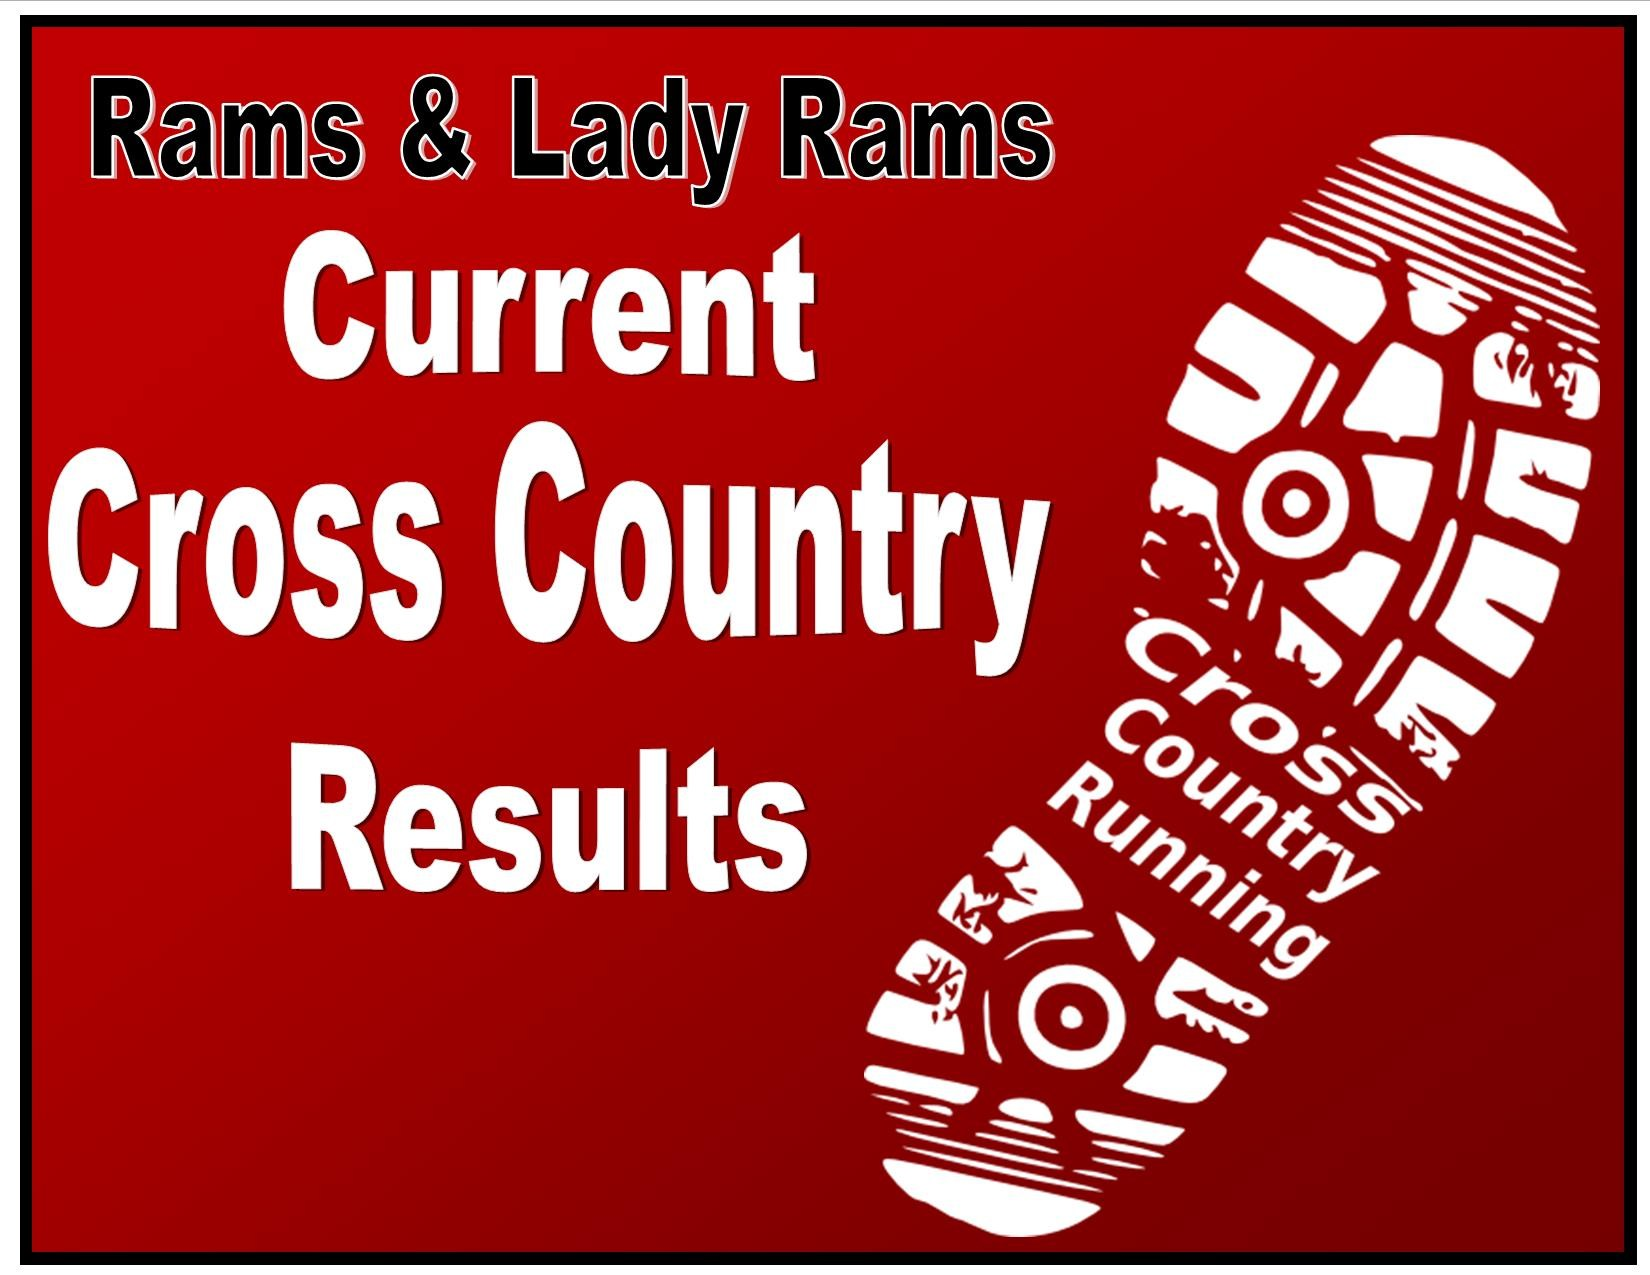 Cross Country Results logo